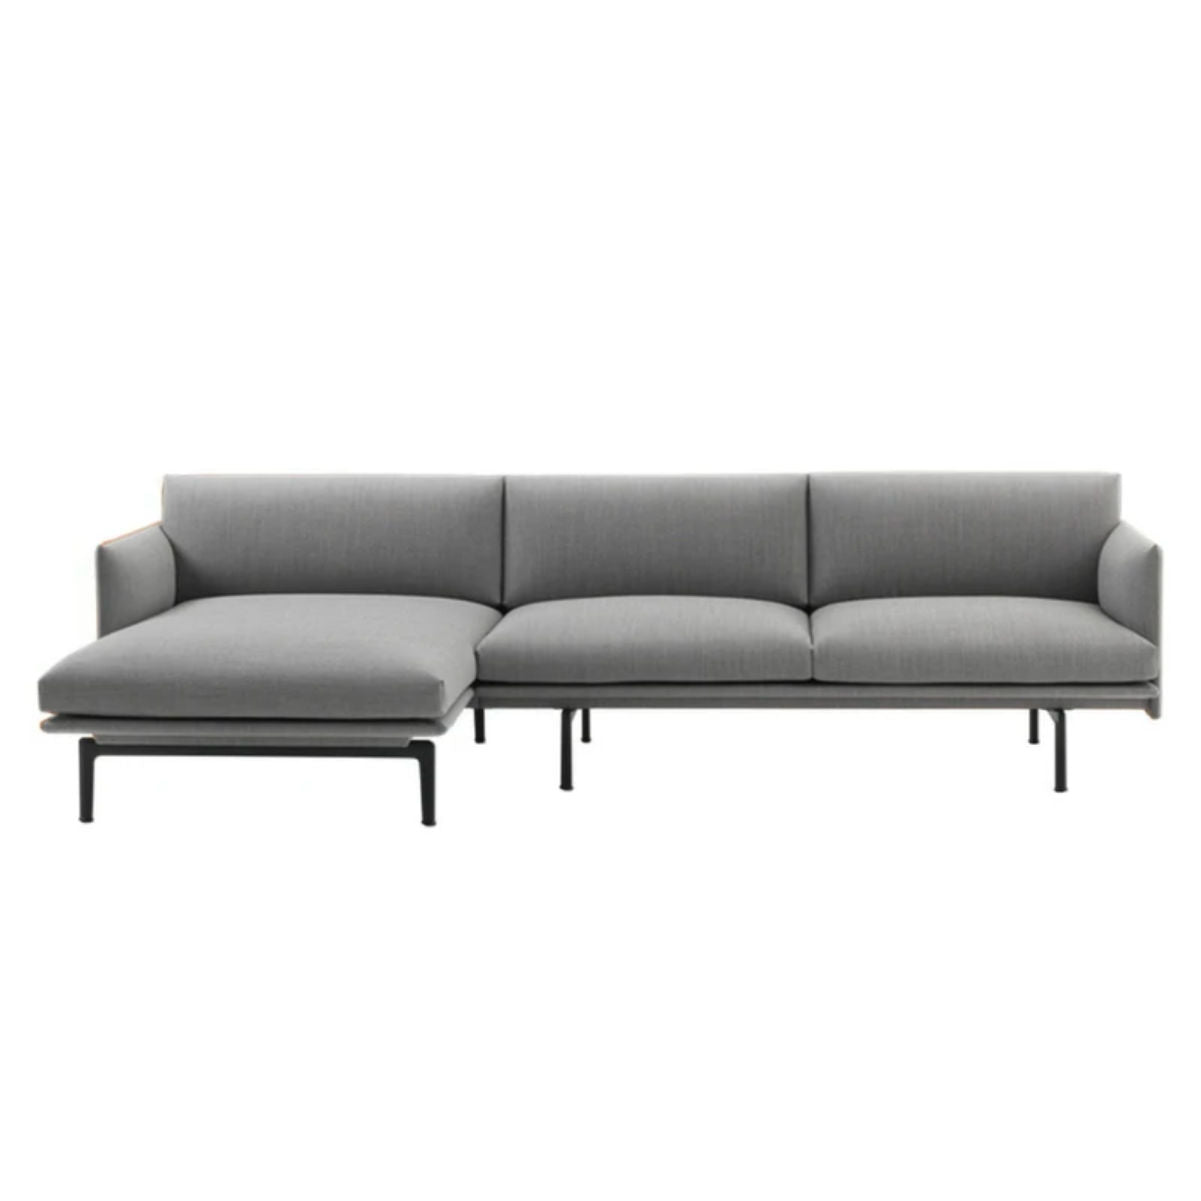 Muuto Outline sofa chaise longue, black base, left